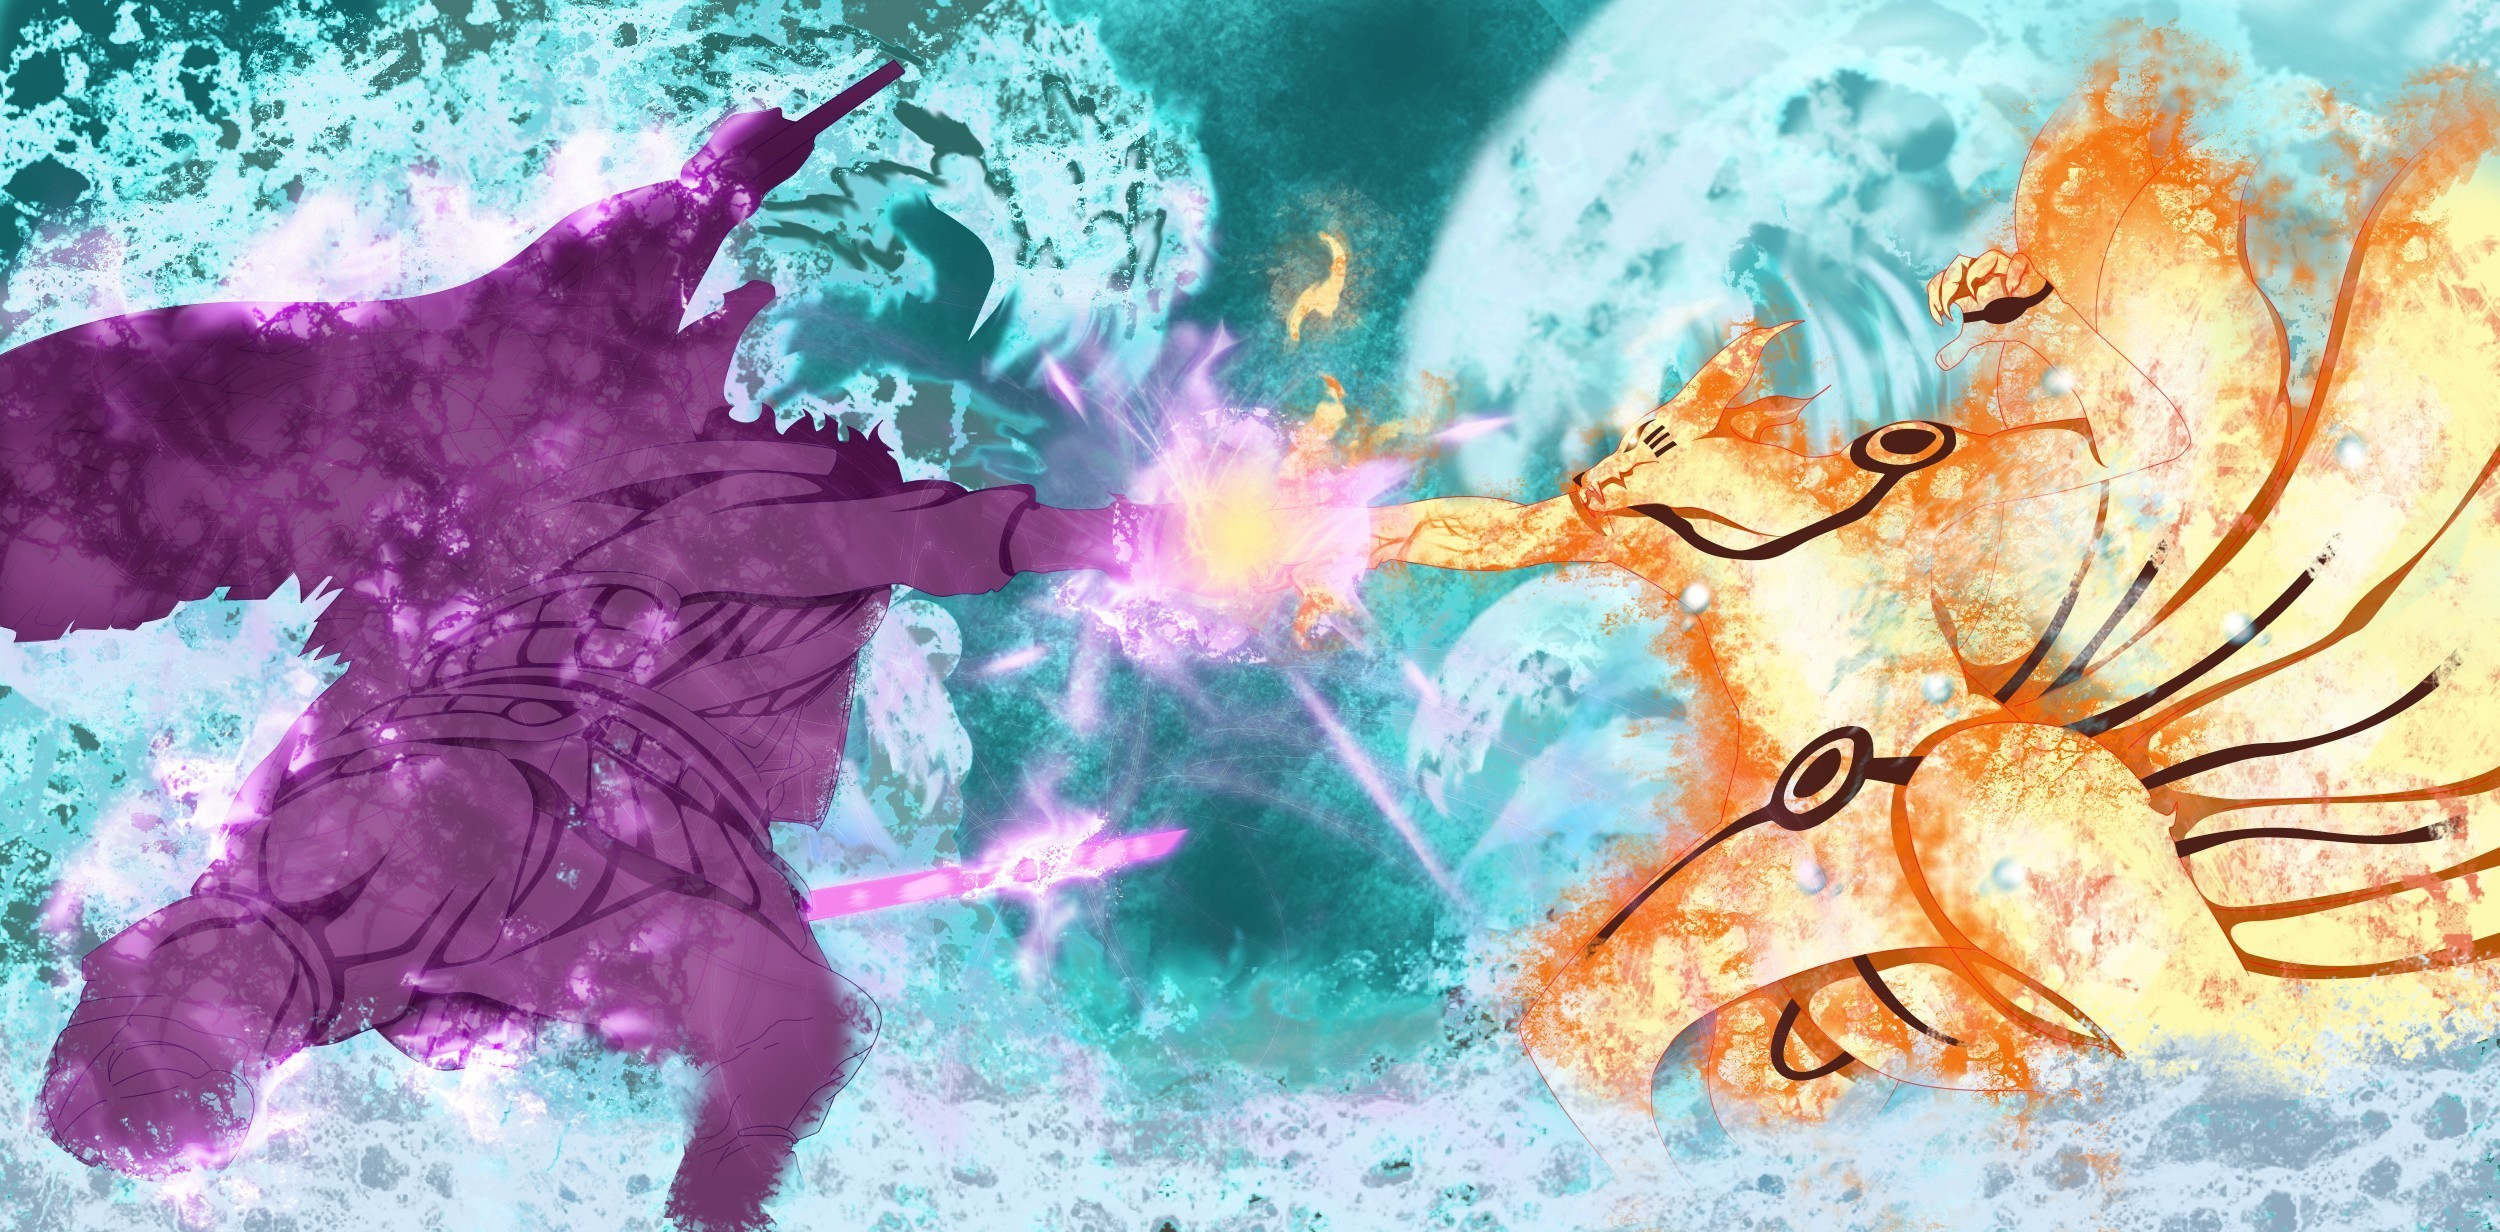 Naruto vs sasuke wallpaper 57 images - Image de narouto ...